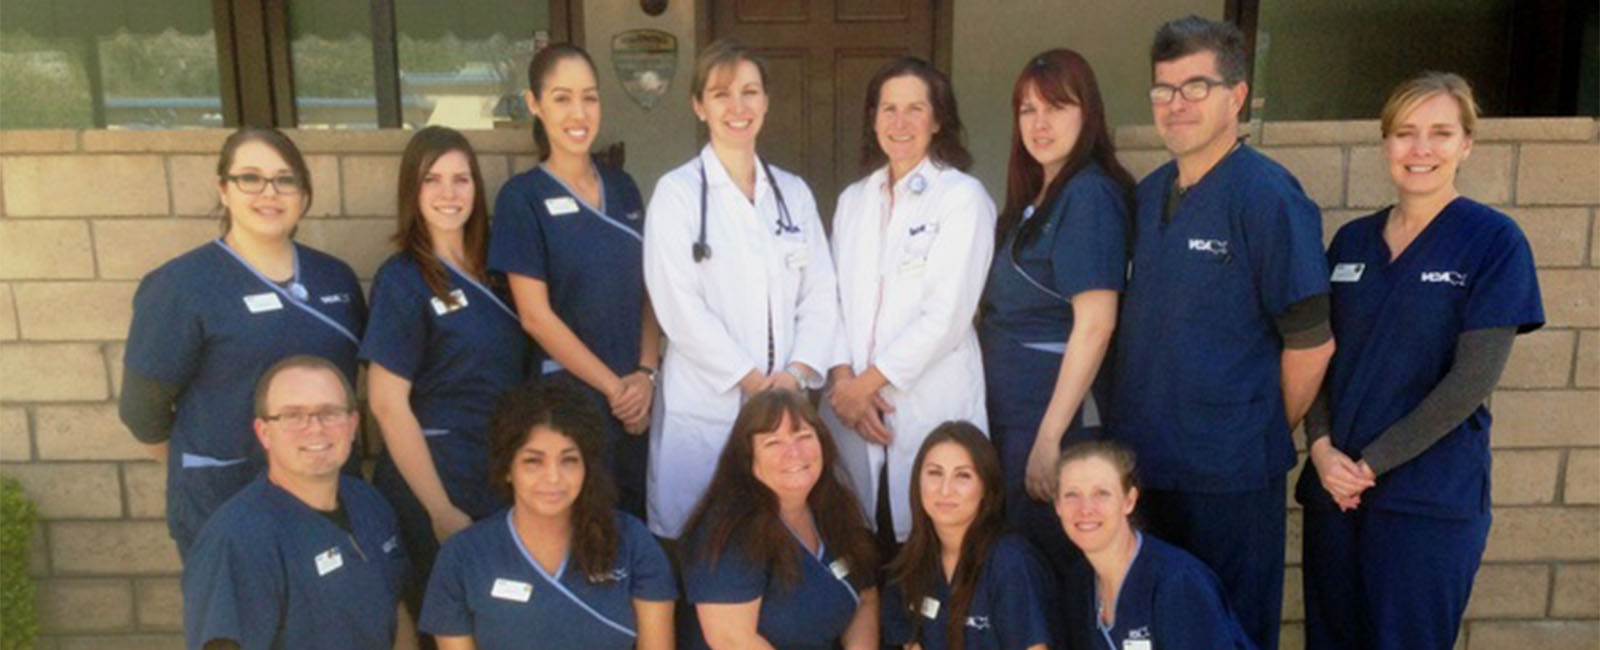 Homepage Team Picture of VCA Northside Animal Hospital